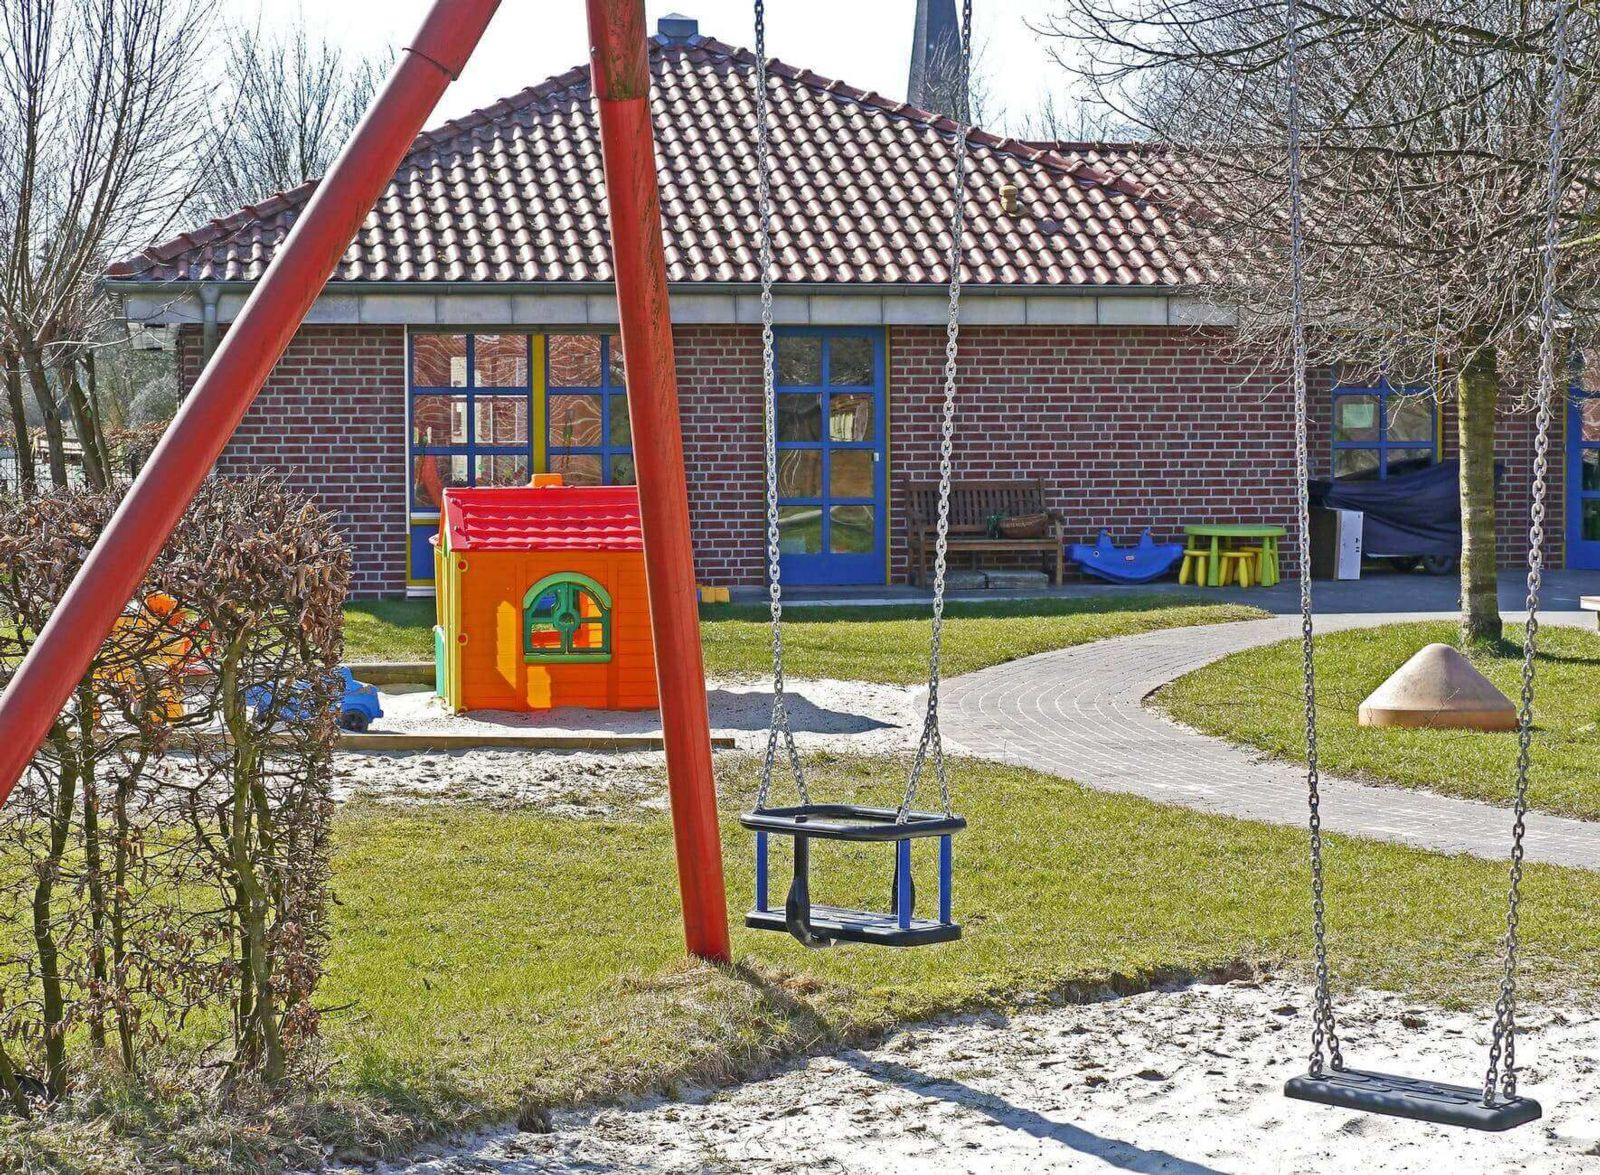 Daycare playground cause child injuries